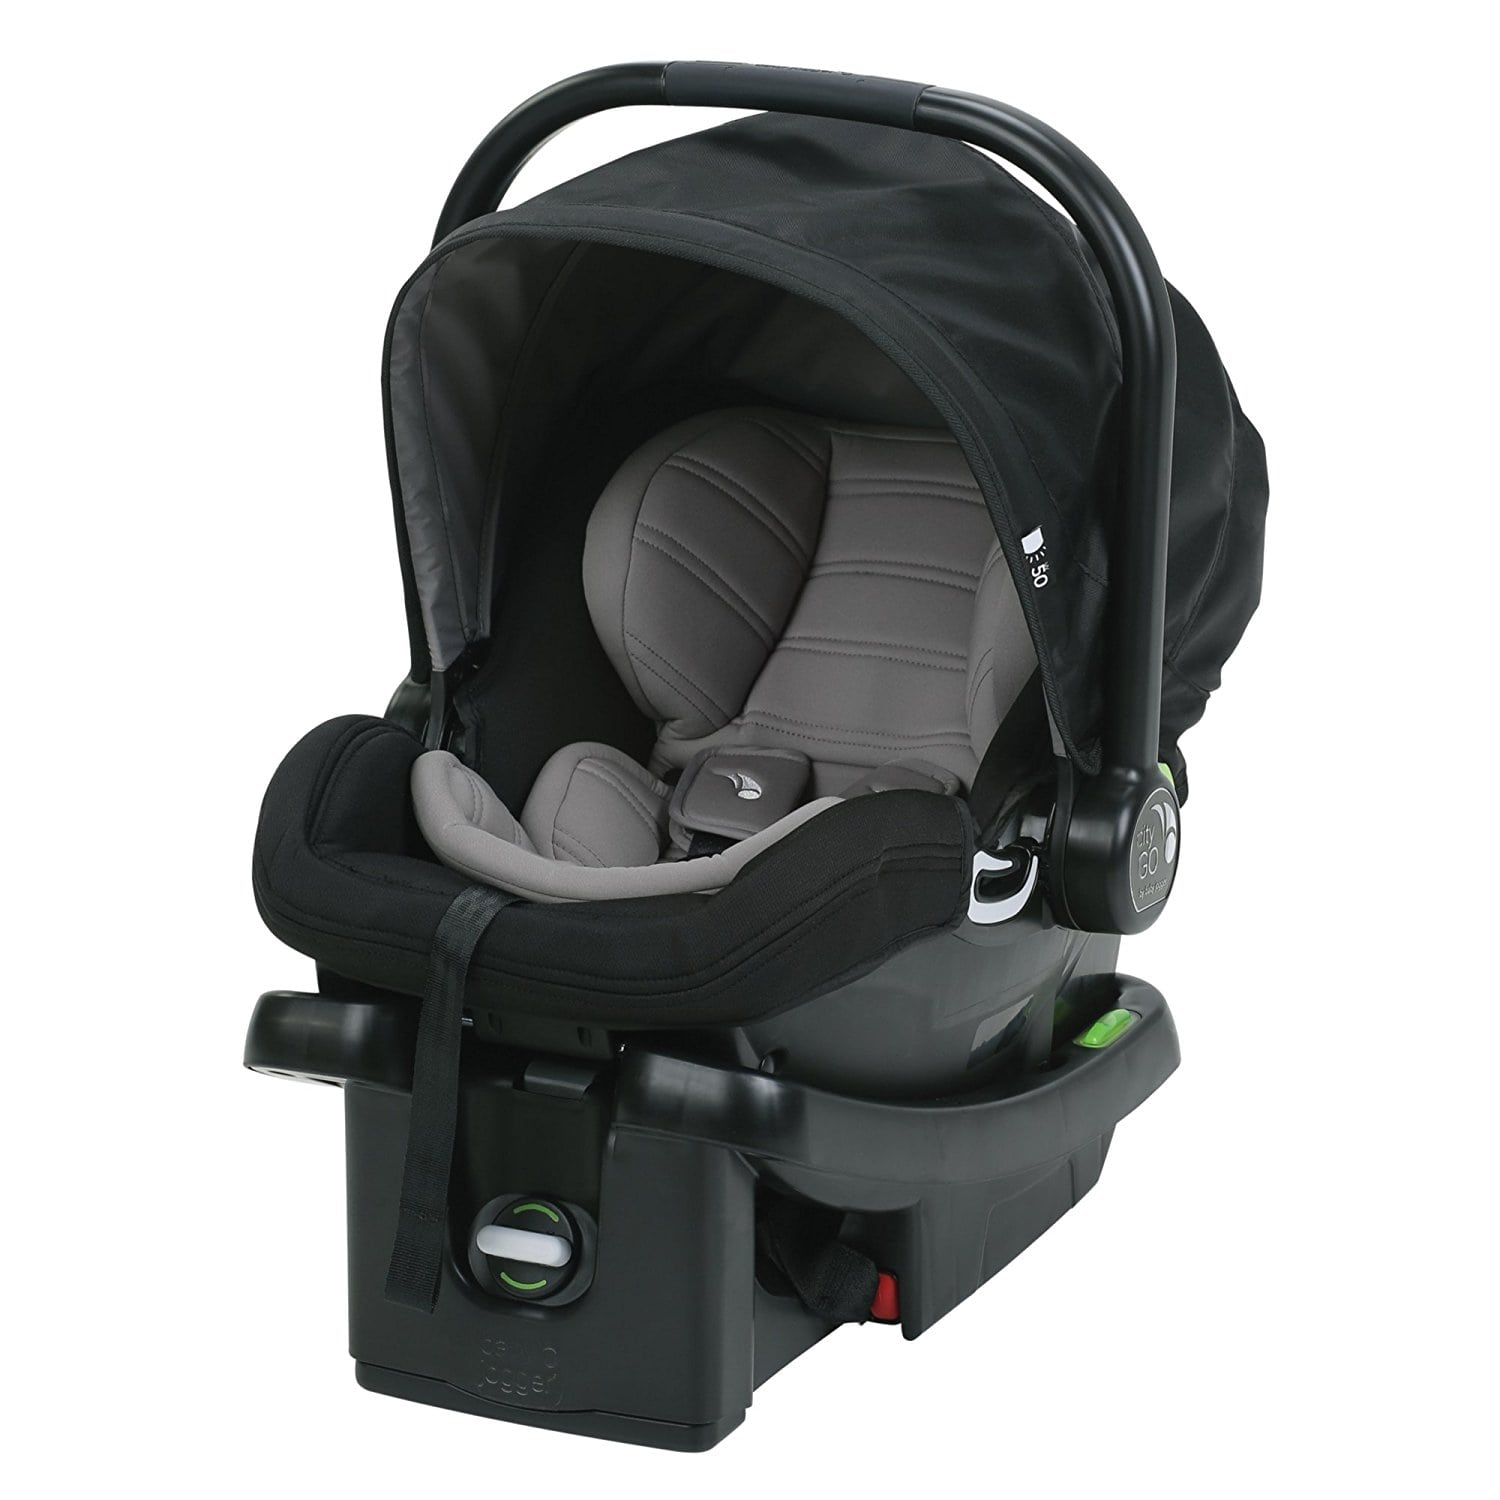 Infant Seat Or Baby Baby Jogger City Go Infant Car Seat • Teetertot